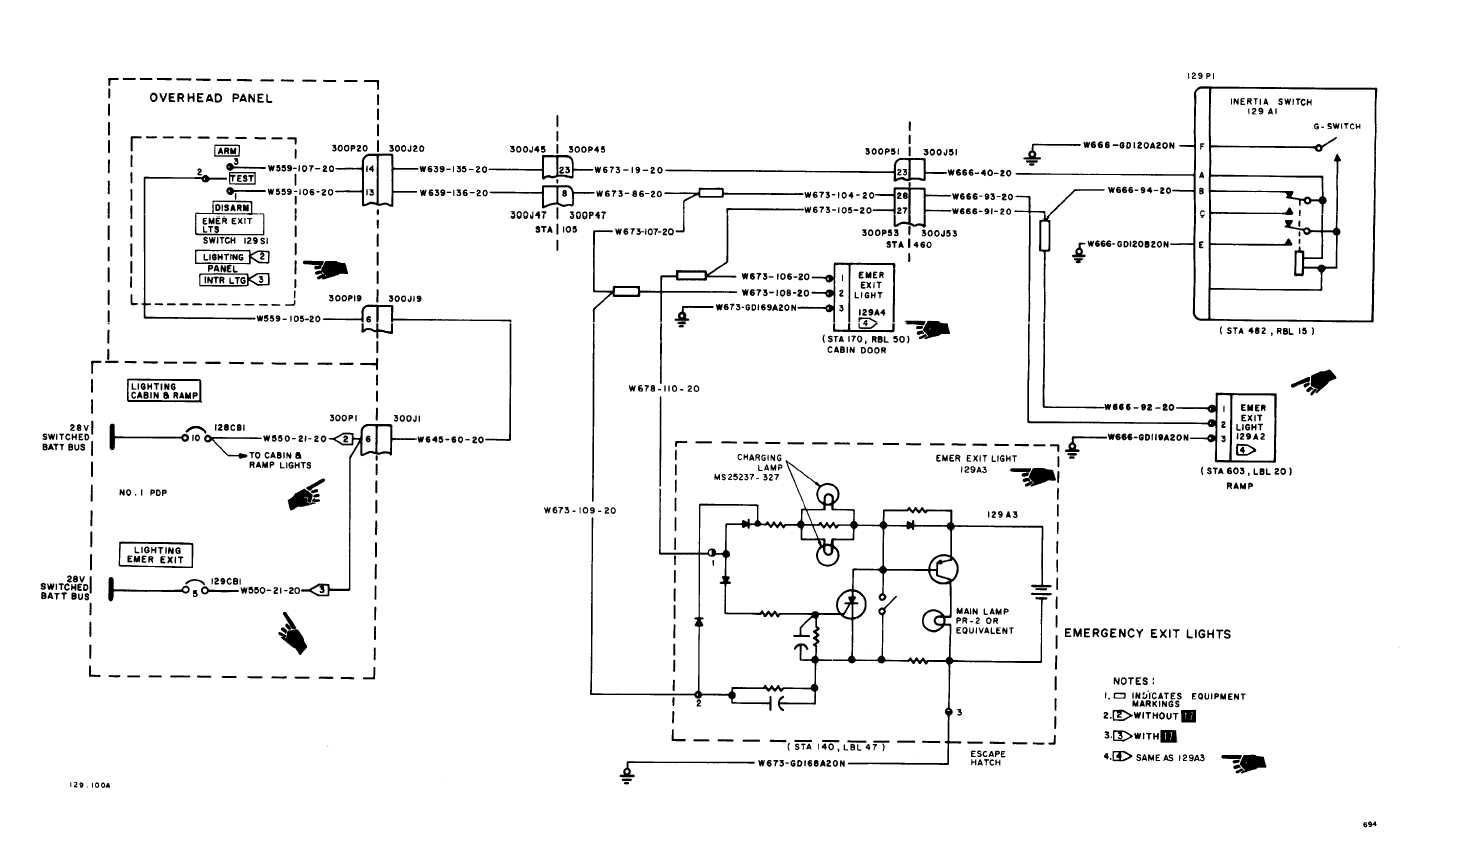 wiring light diagram the wiring diagram emergency exit lights wiring diagram wiring diagram